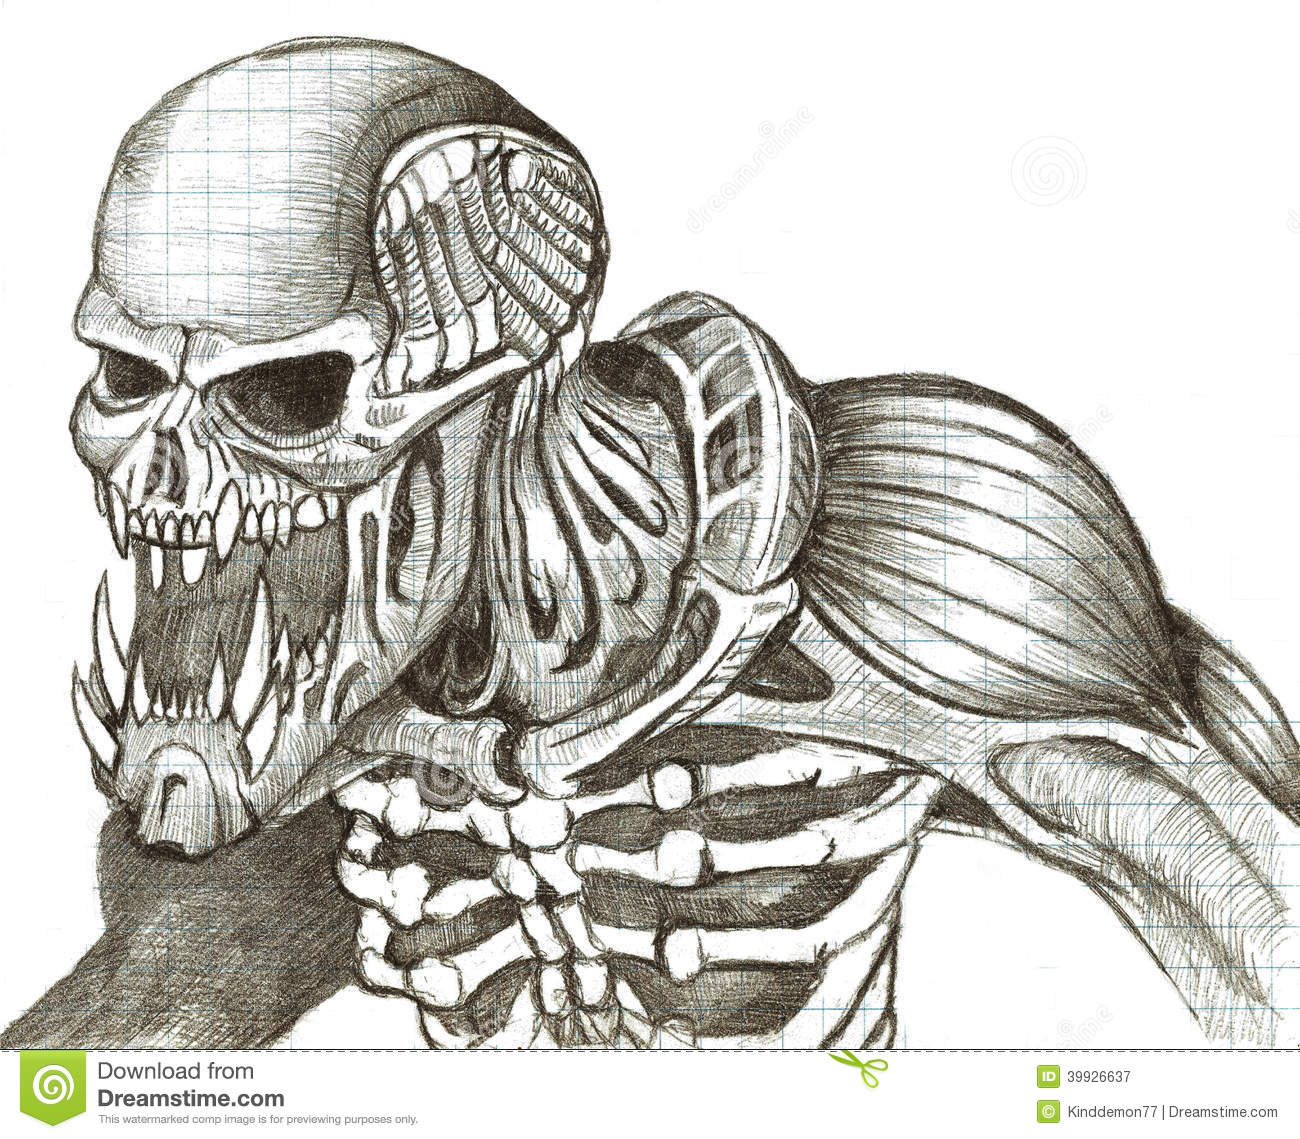 The skeleton of a monster fantasy drawn in the graphics style pencil.